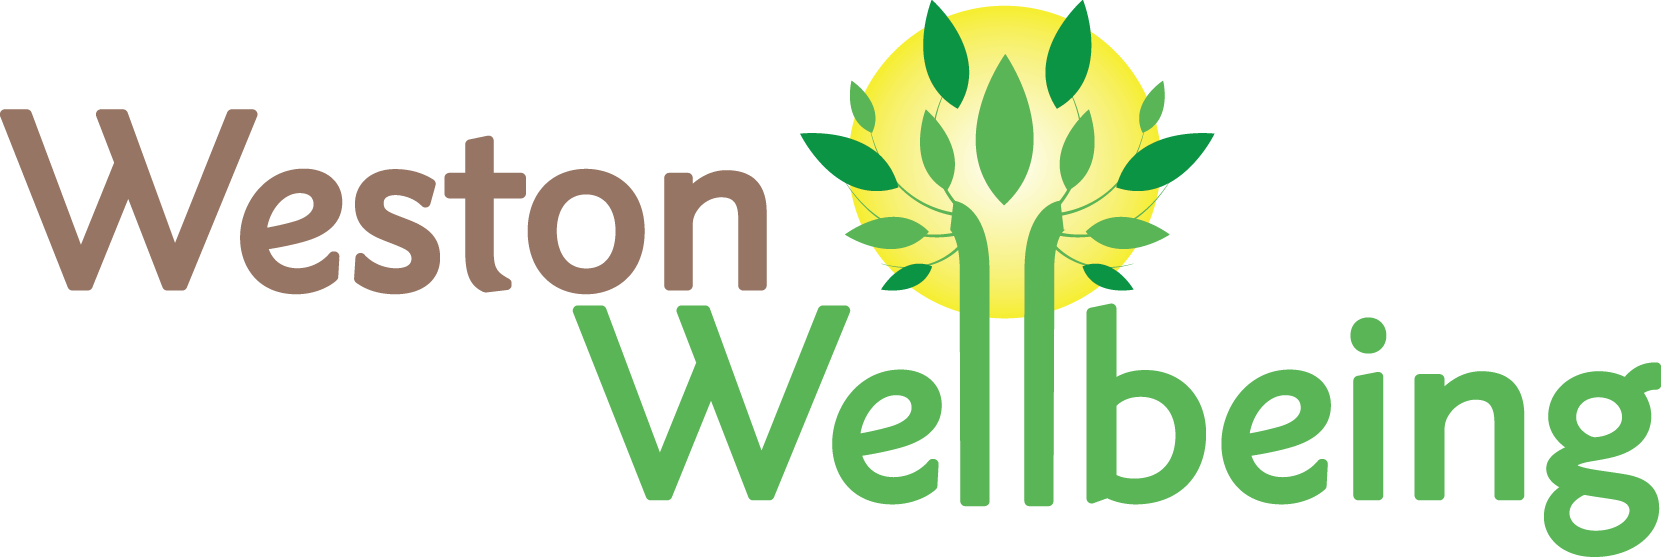 Weston Wellbeing